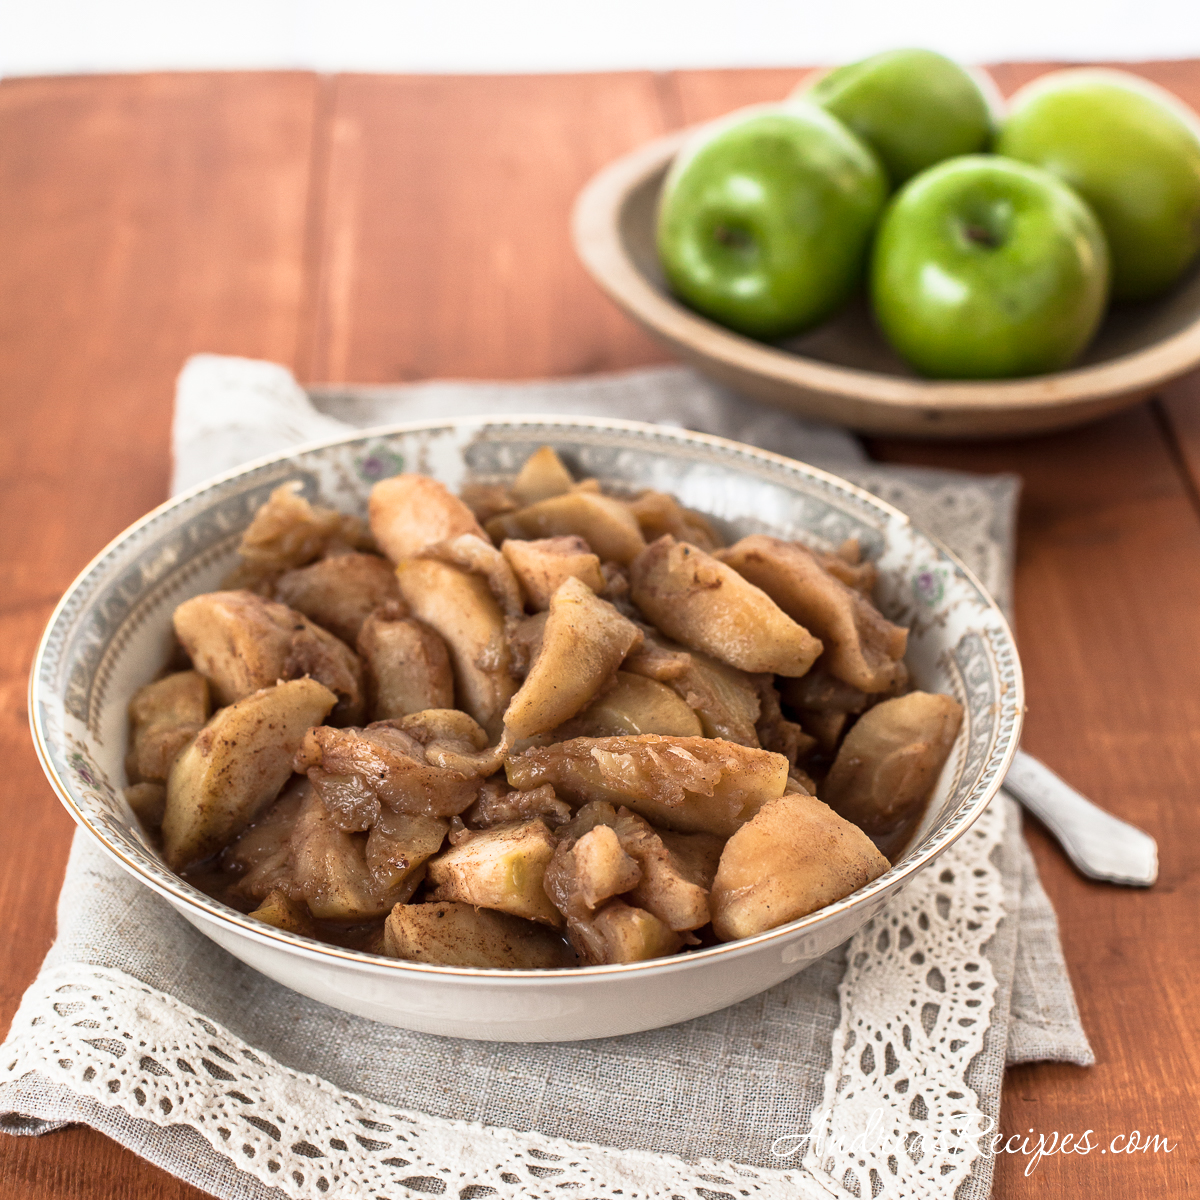 My Family's Fried Apples - Andrea Meyers